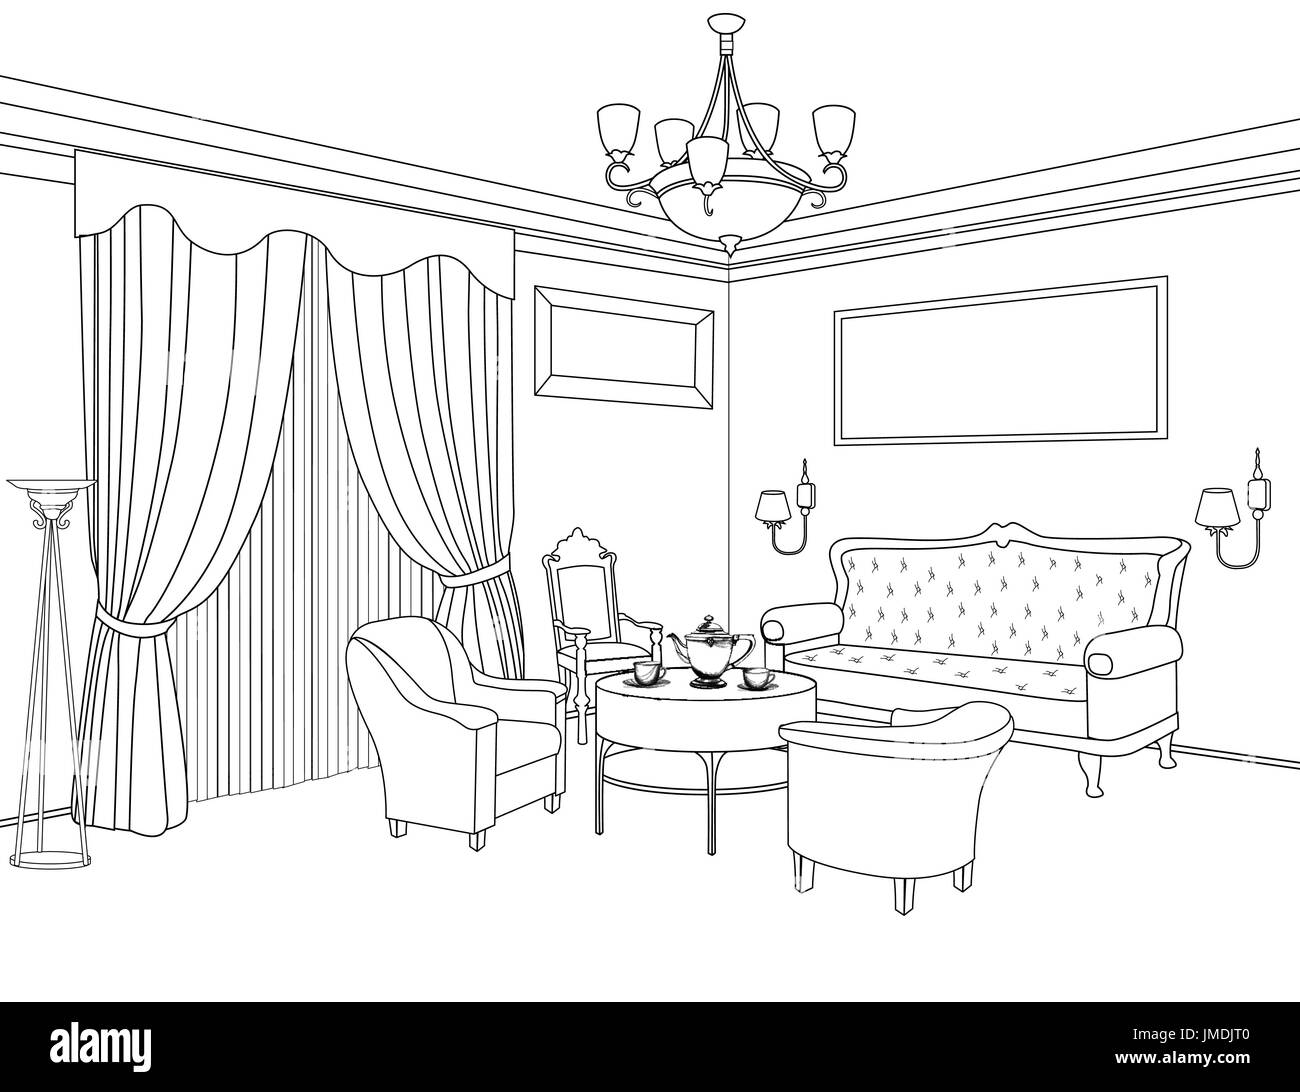 Blueprint black and white stock photos images alamy interior outline sketch furniture blueprint architectural design living room stock image malvernweather Image collections